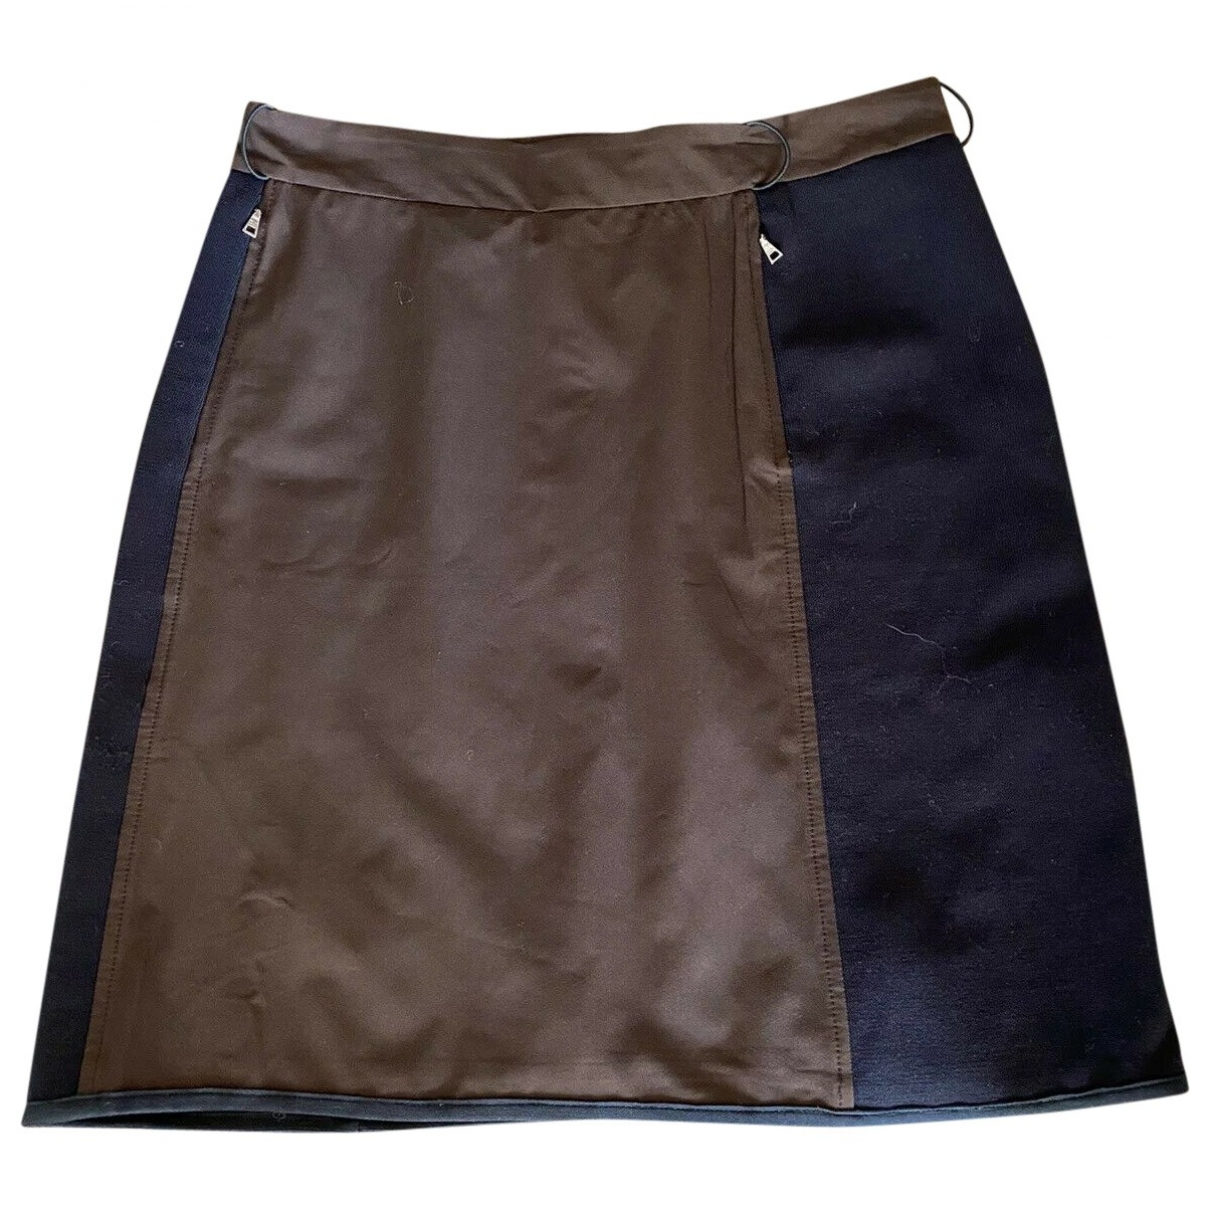 Prada \N Brown skirt for Women 42 IT